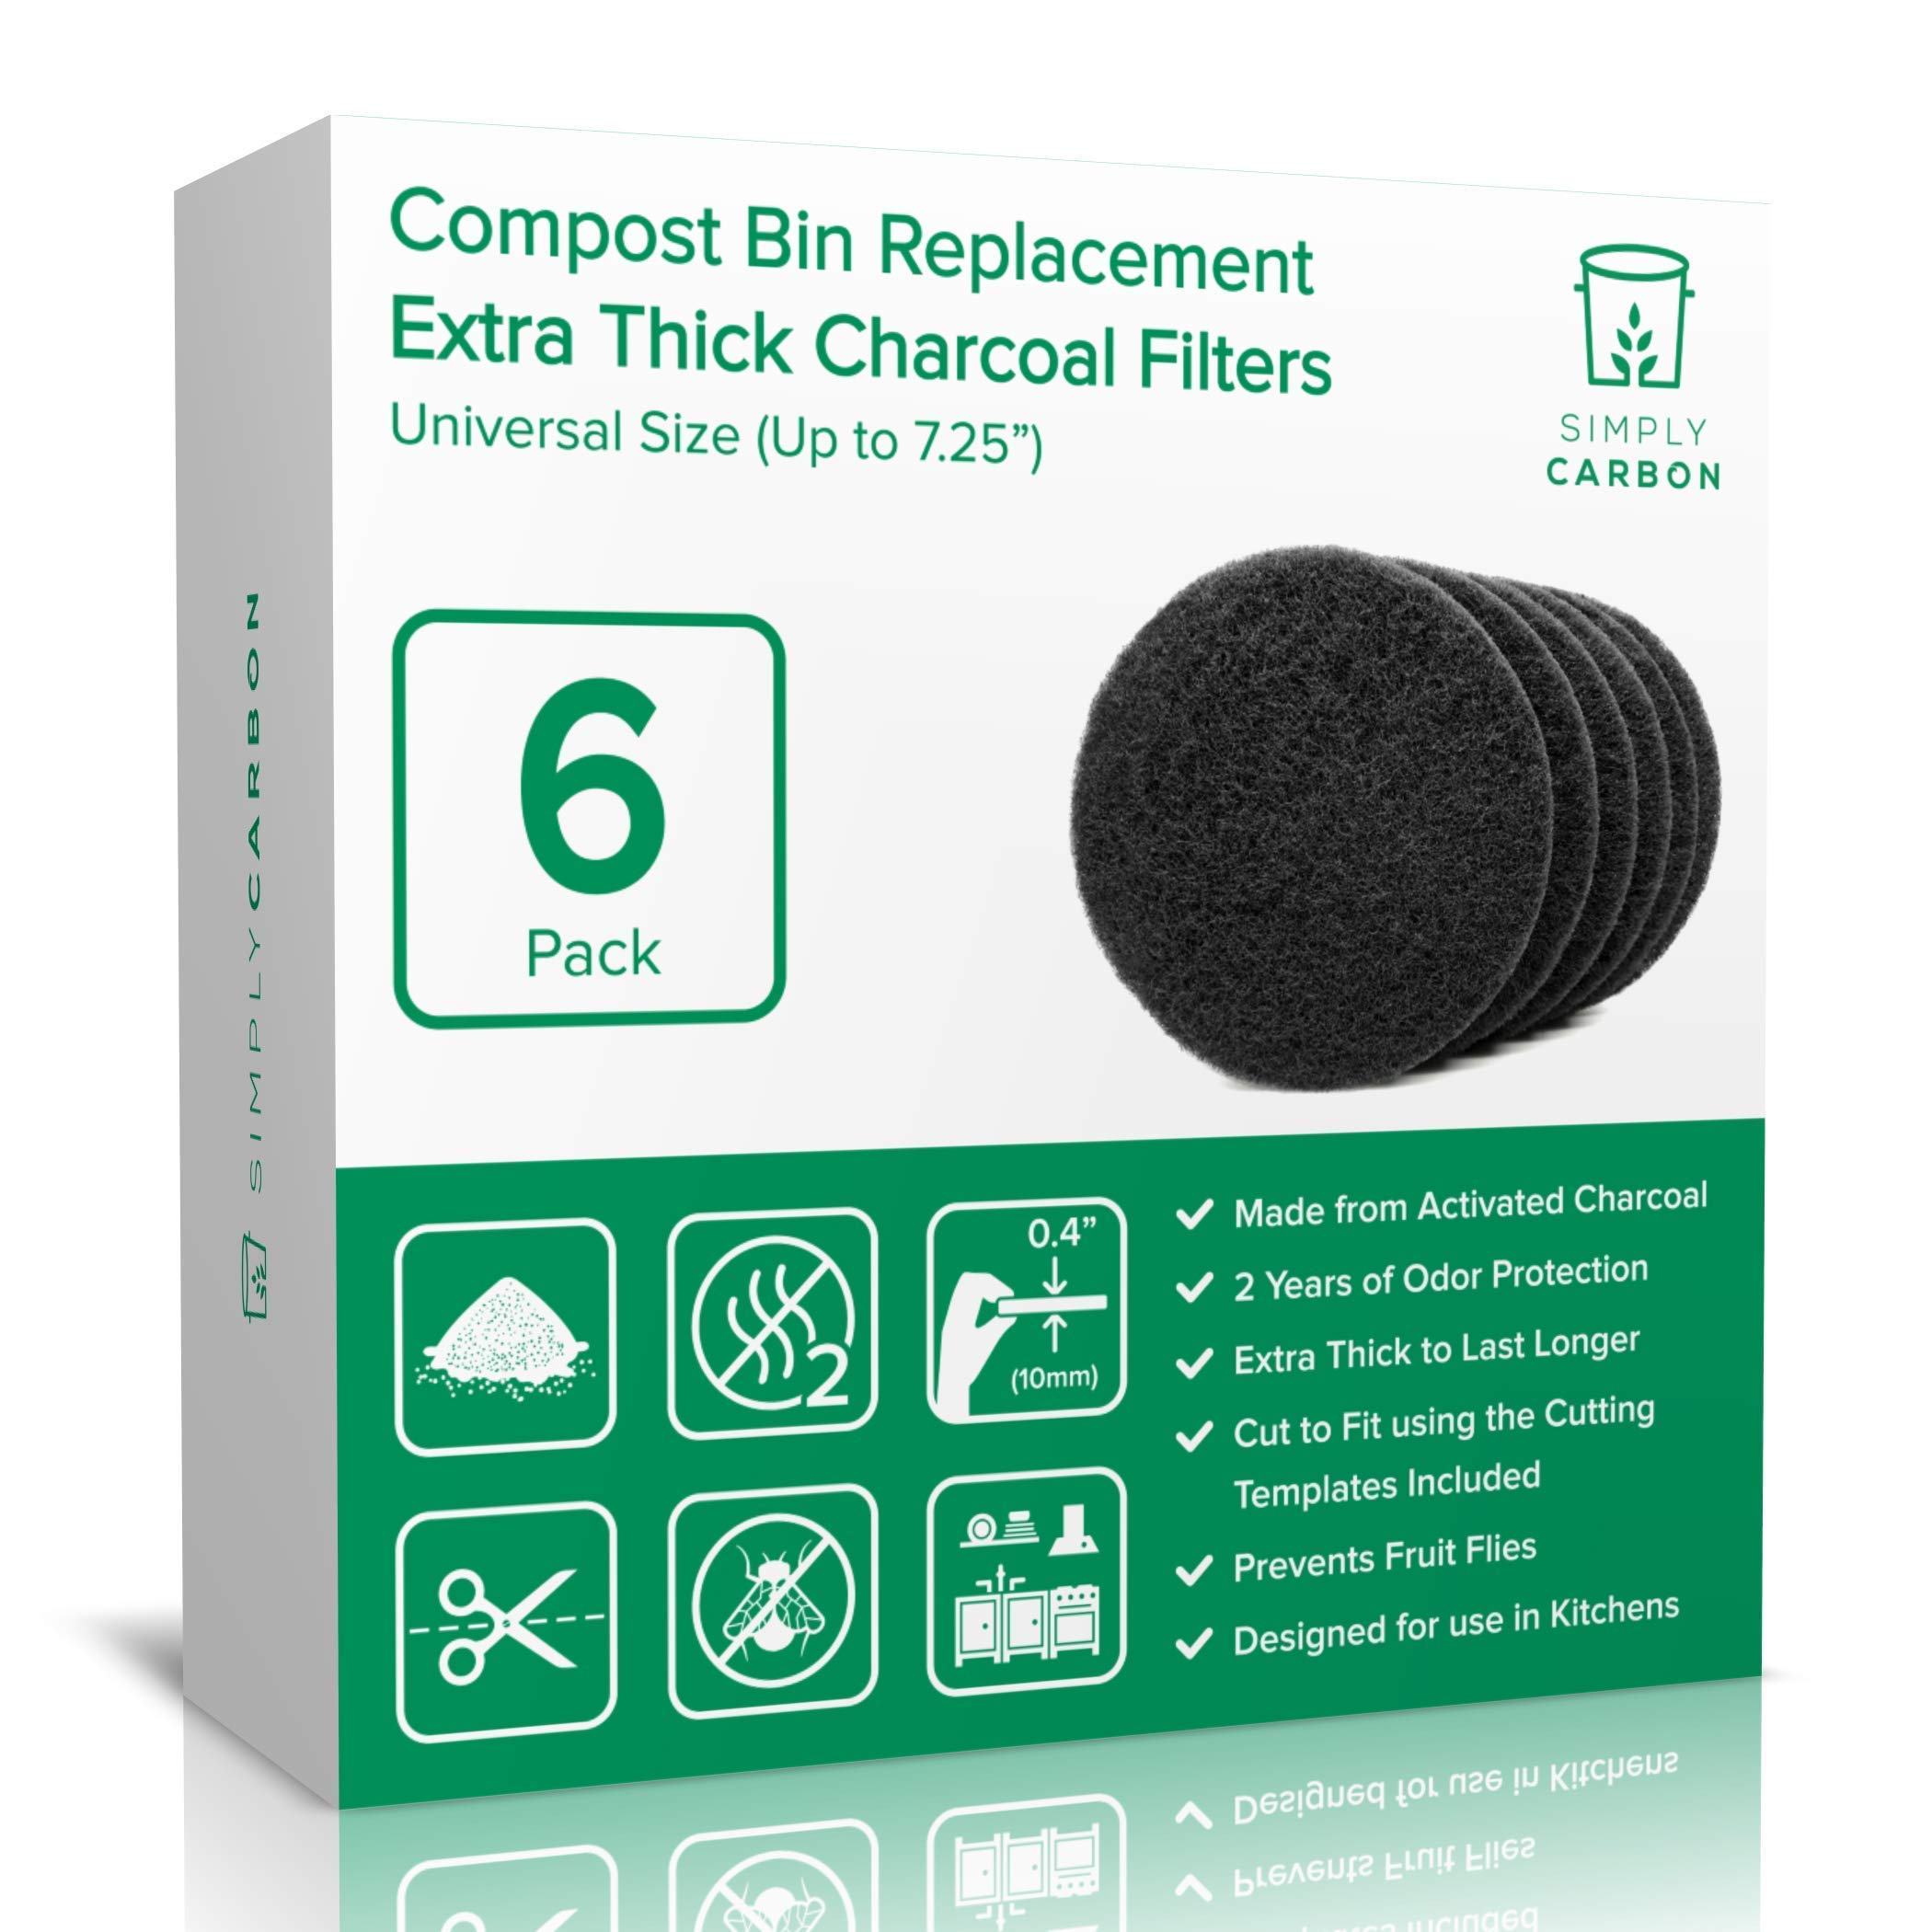 """Simply Carbon 2 Years Supply Extra Thick Filters for Kitchen Compost Bins - Longer Lasting Activated Charcoal - Universal Size Fits All Compost Bins up to 7.25"""" Filter Size - Replacement Set of 6"""